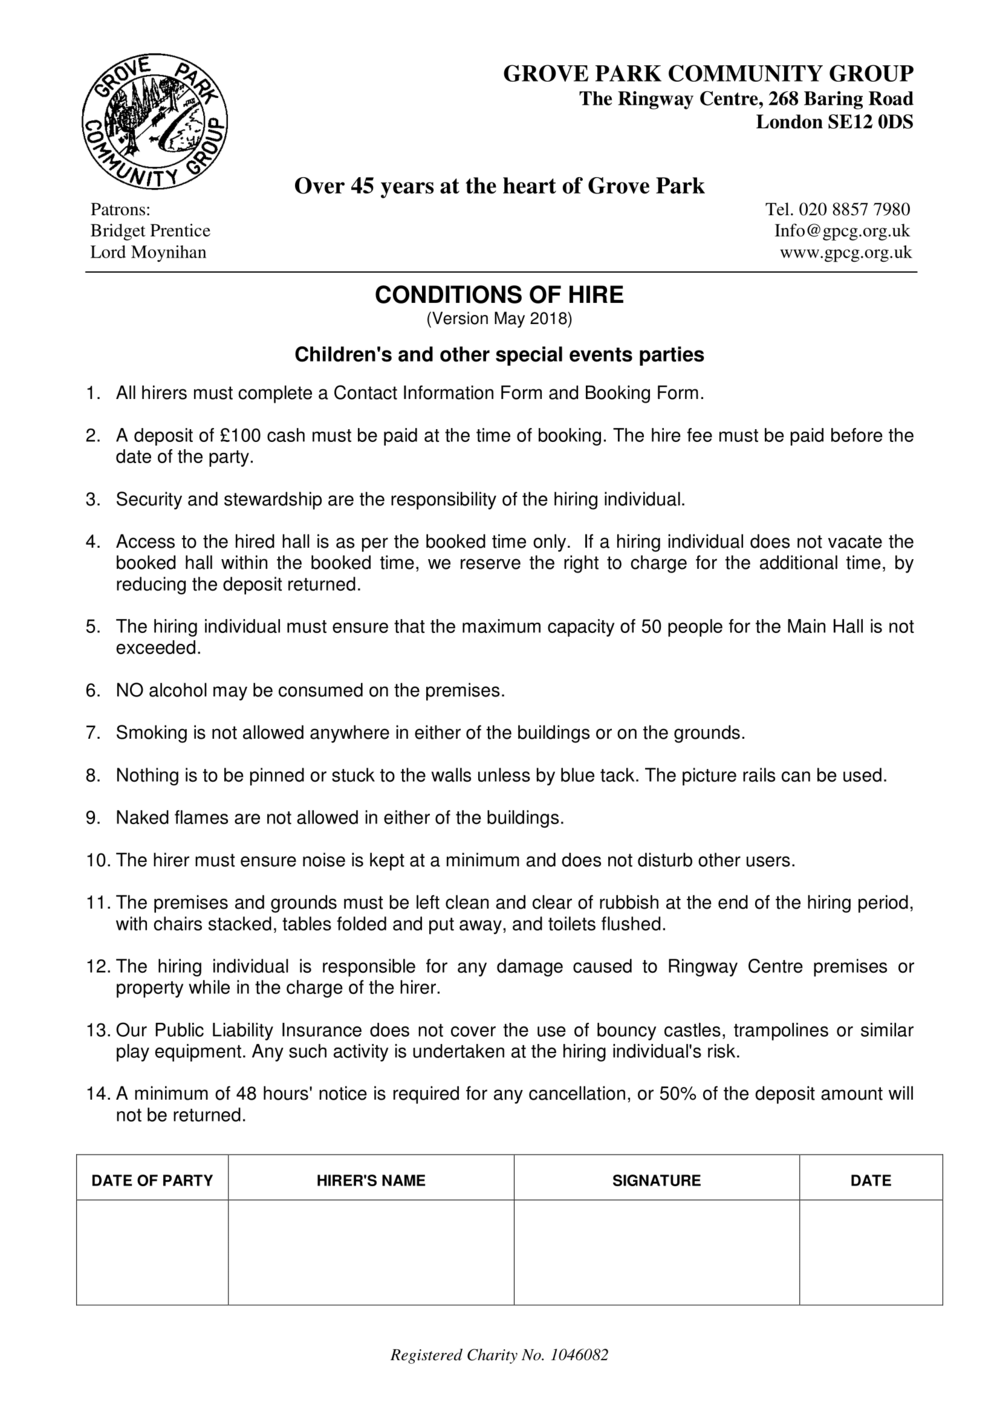 Hire Conditions for parties May 2018-1.png